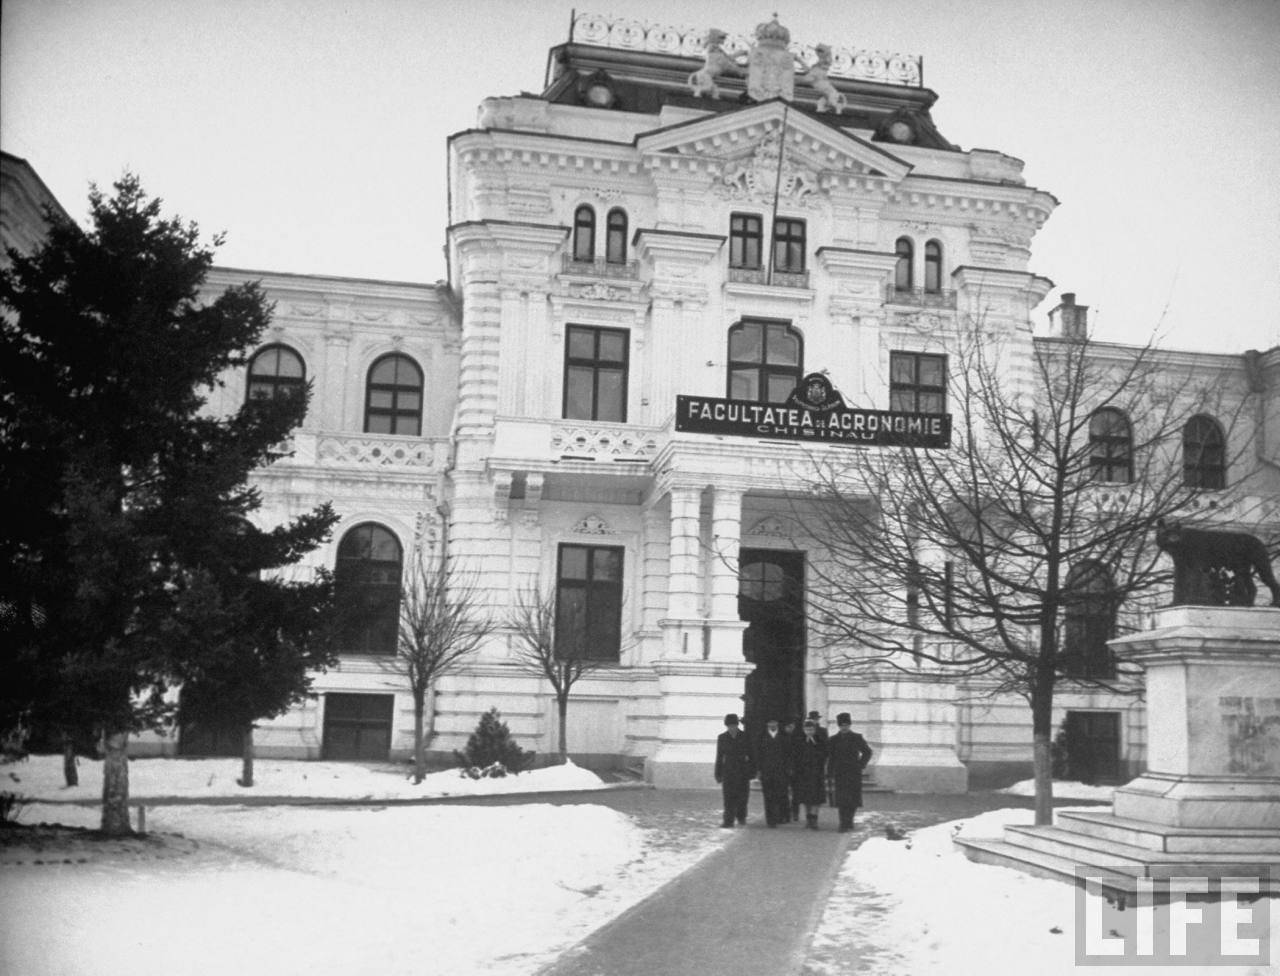 The building of the Faculty of Agronomy, 1938